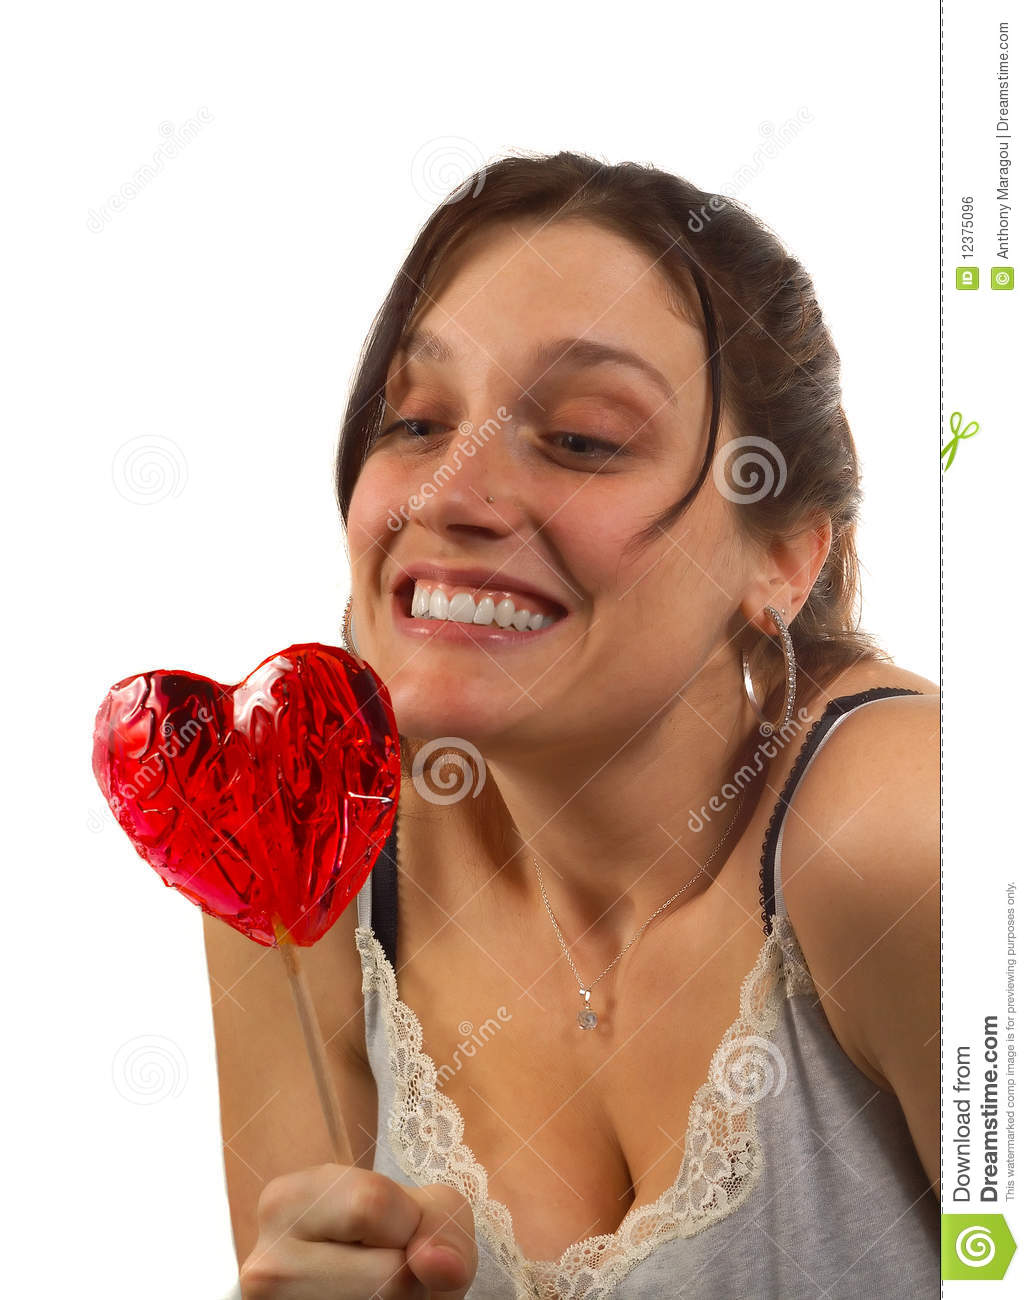 Young woman looks at heart shaped lollipop